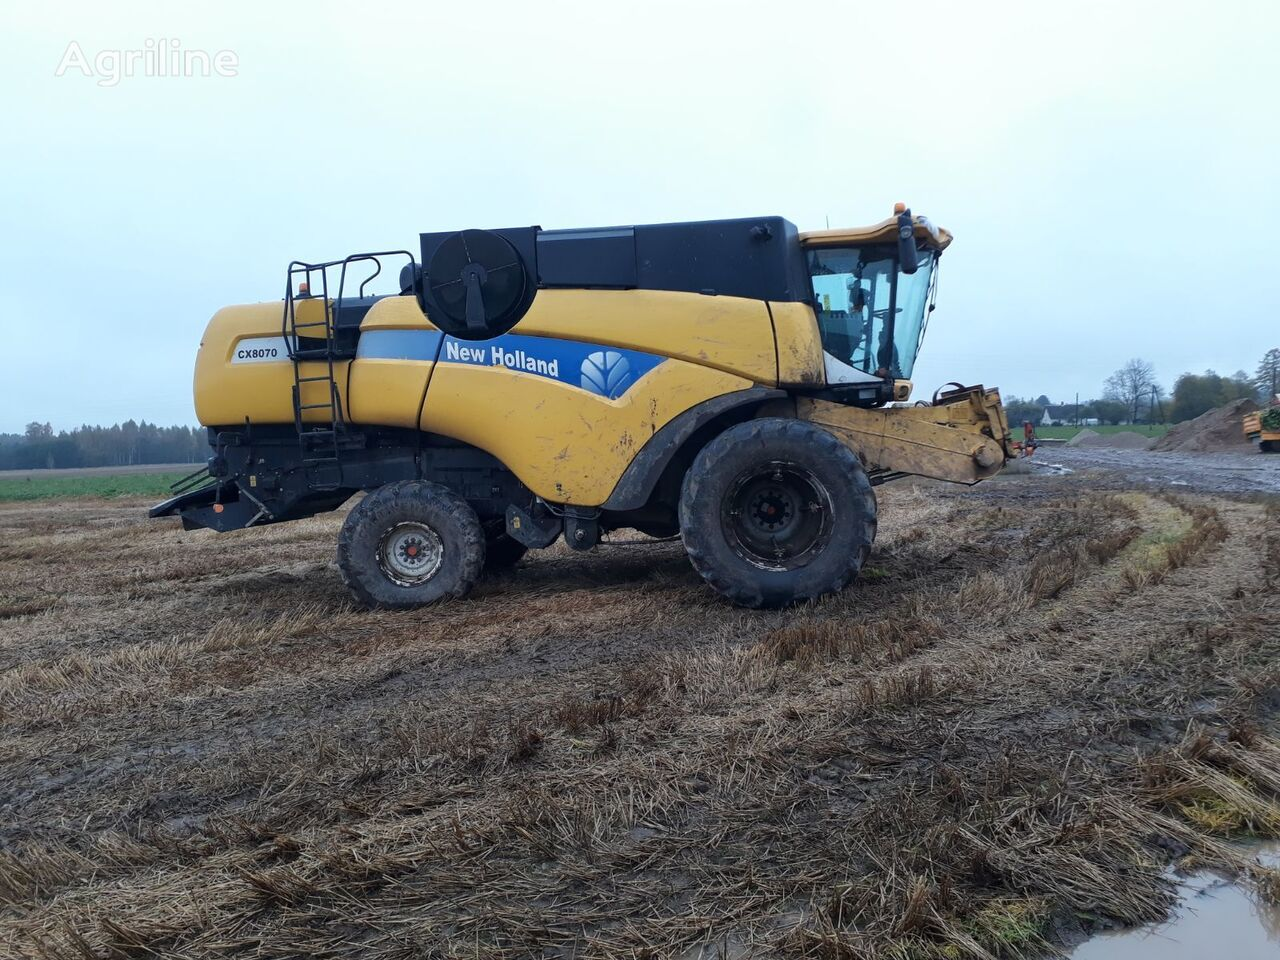 NEW HOLLAND CX8070 biçerdöver